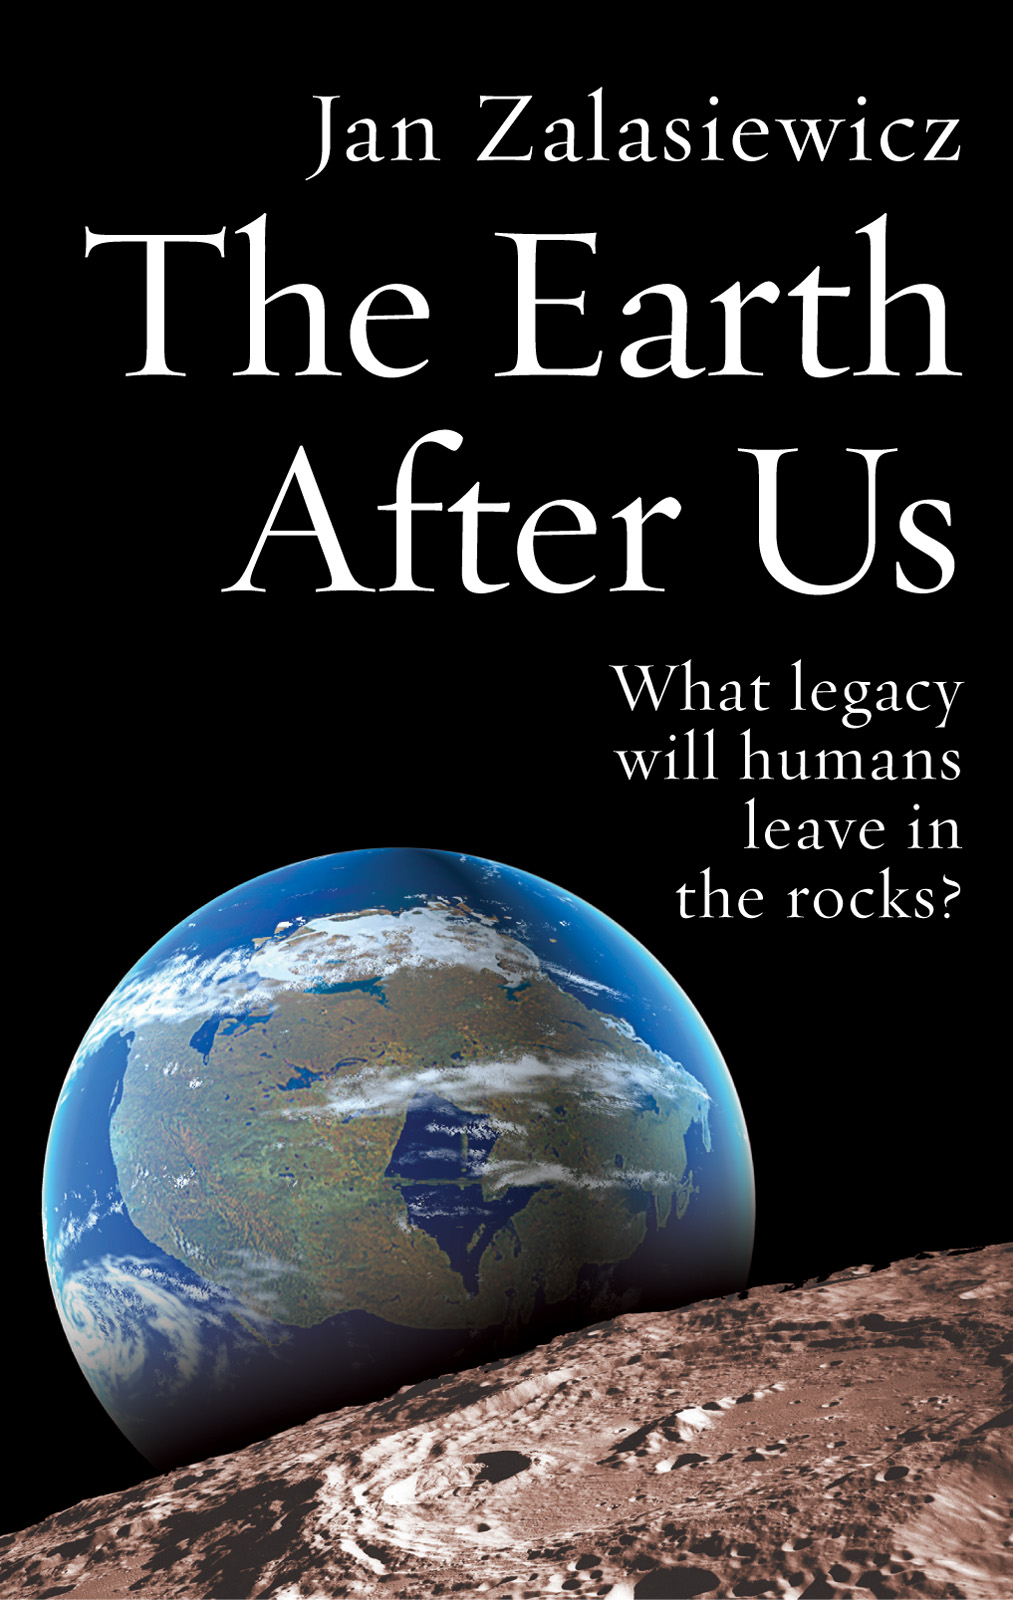 The Earth After UsWhat legacy will humans leave in the rocks?